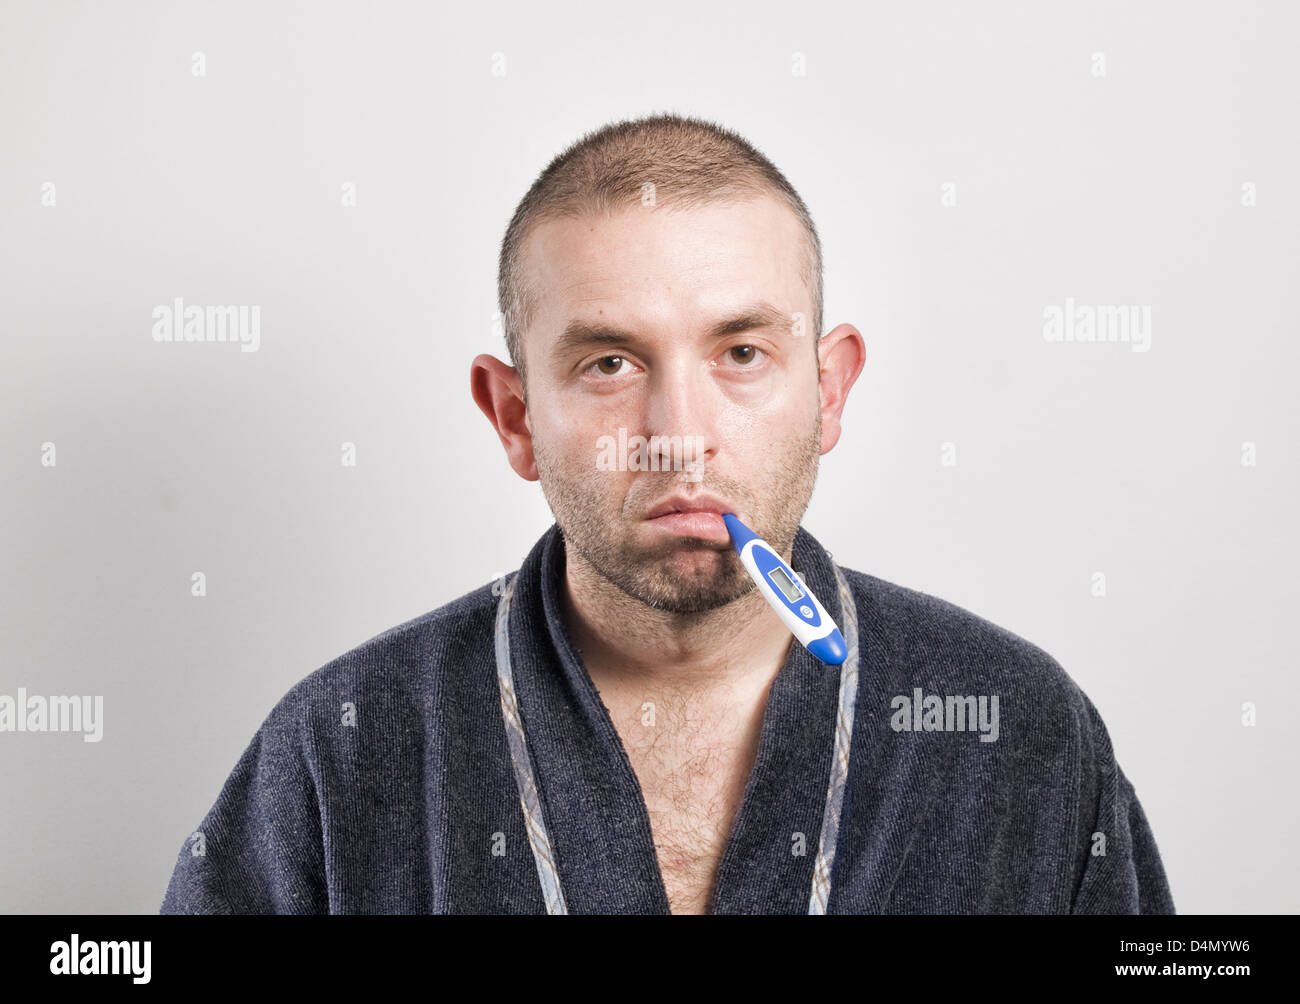 Sick man with thermometer on white background.rA normal man, no model. - Stock Image